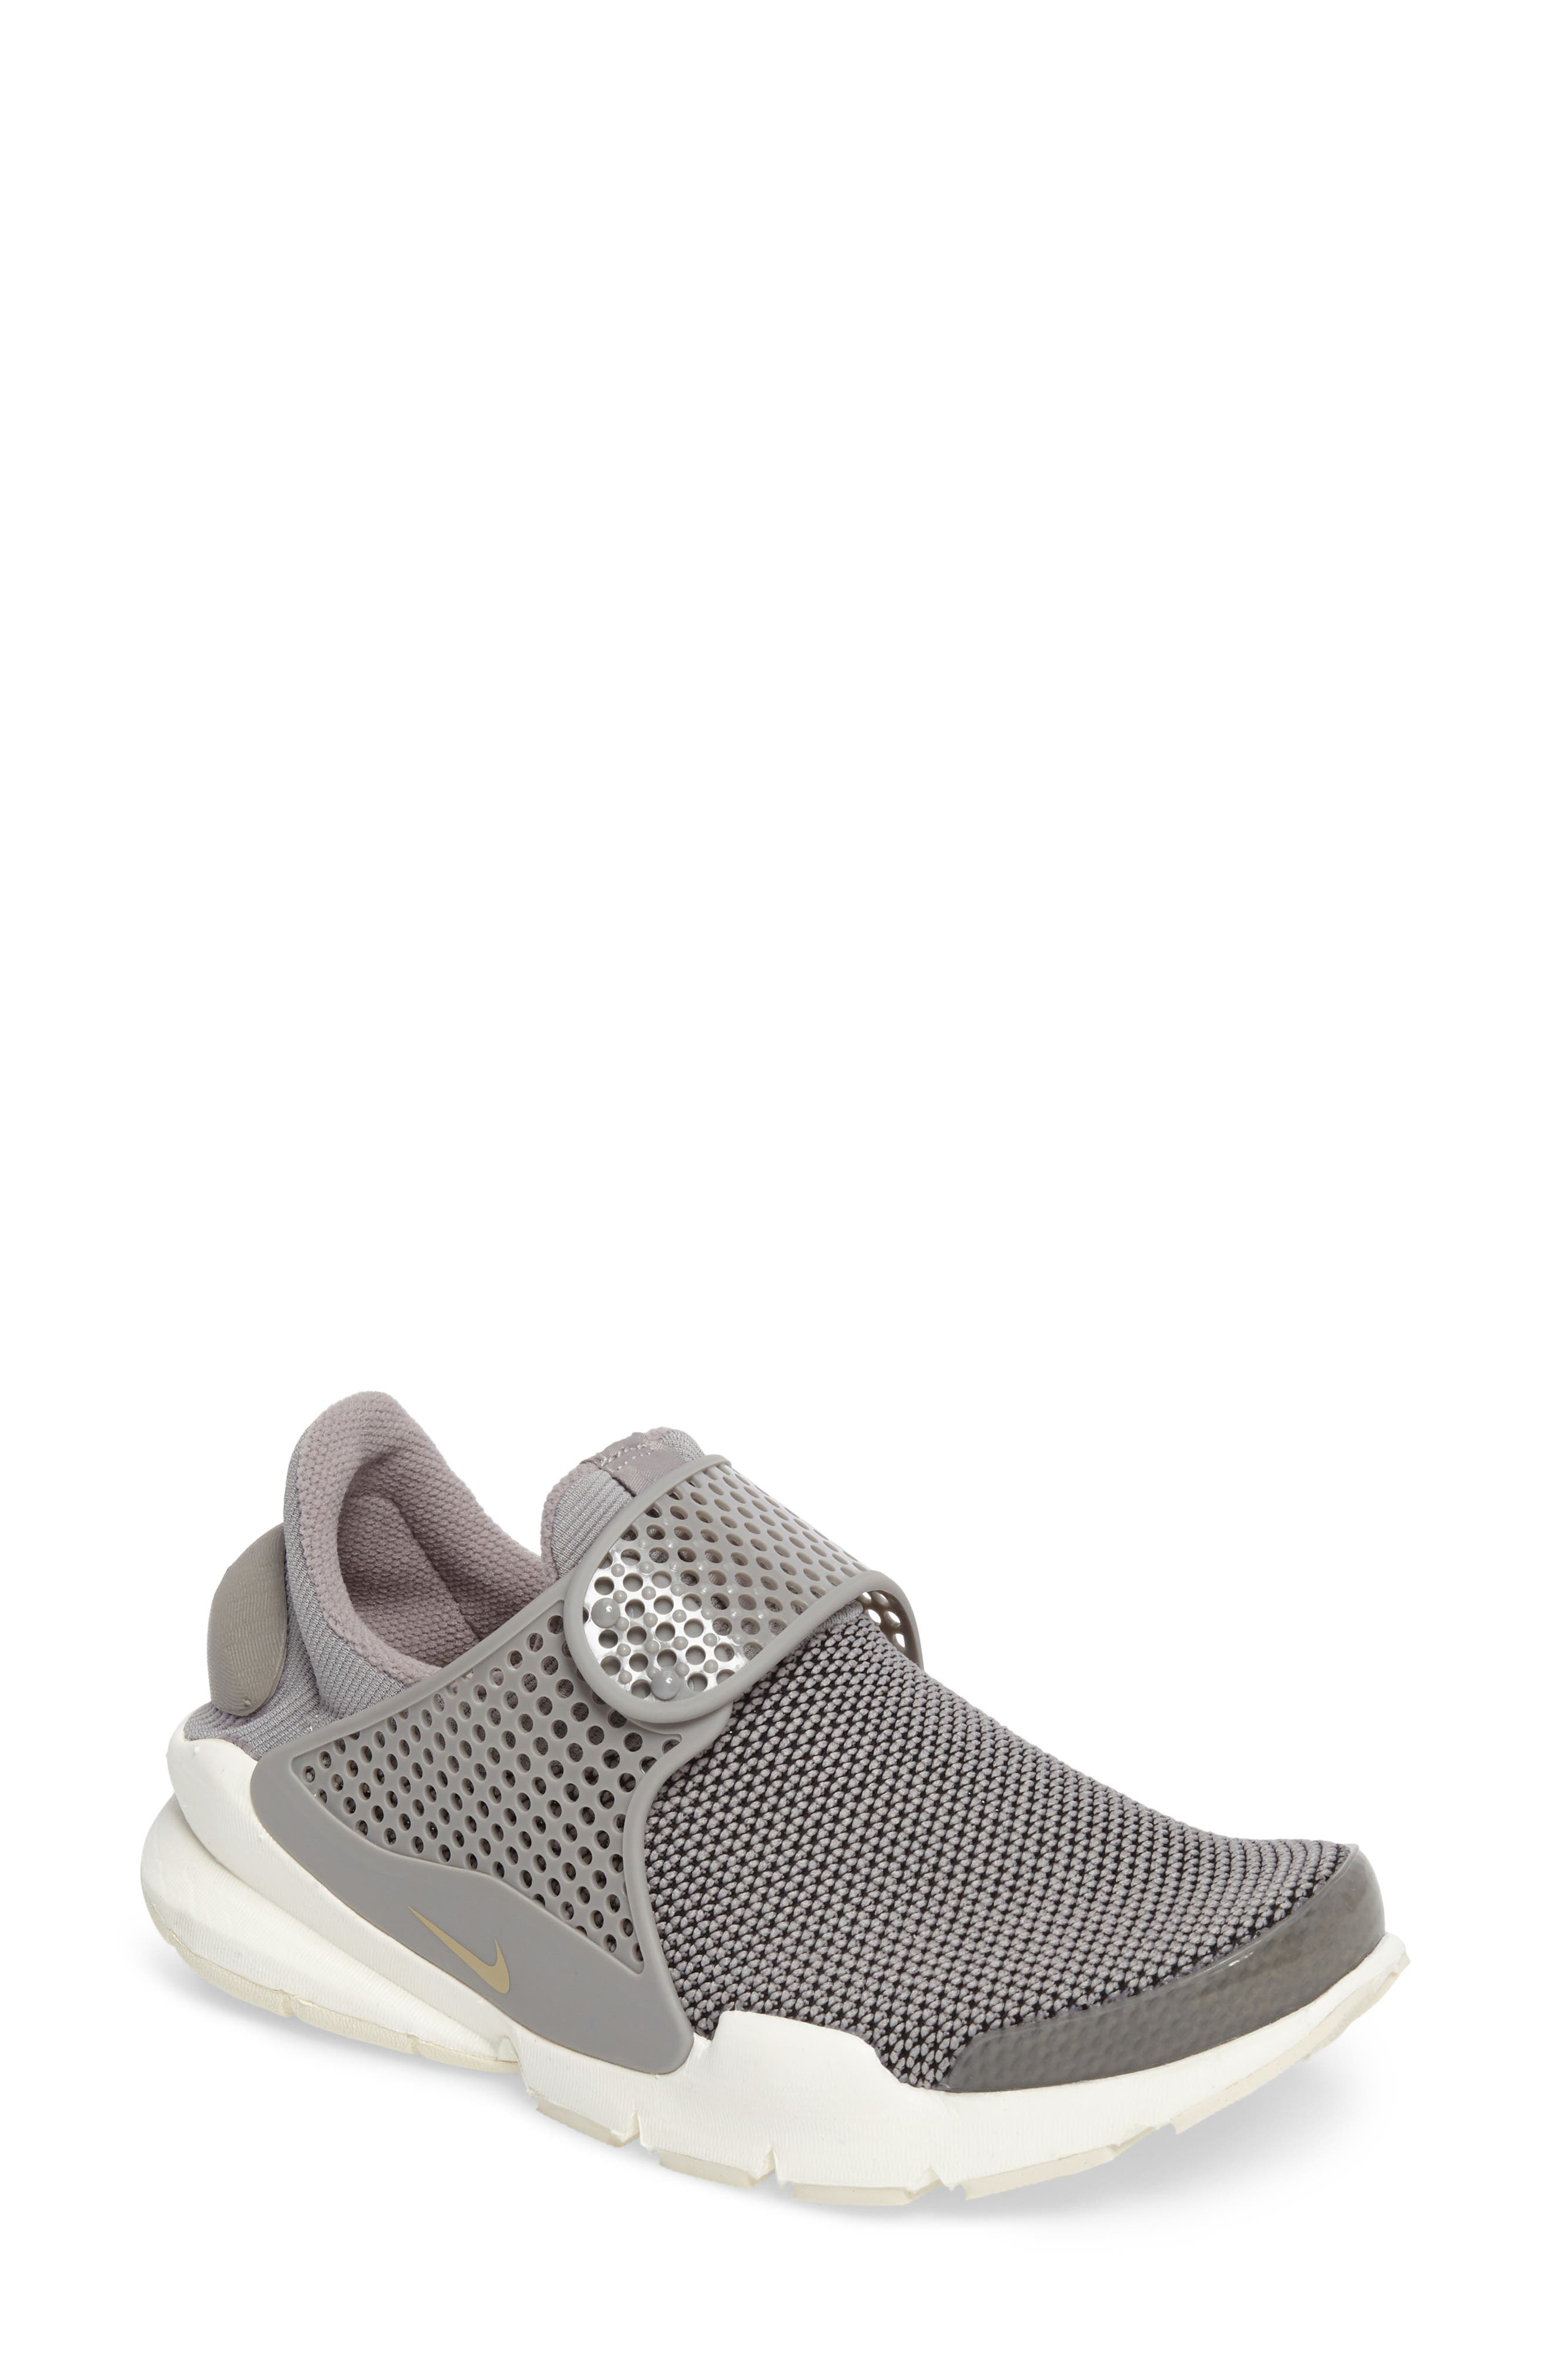 Alternate Image 1 Selected - Nike Sock Dart Sneaker (Women)